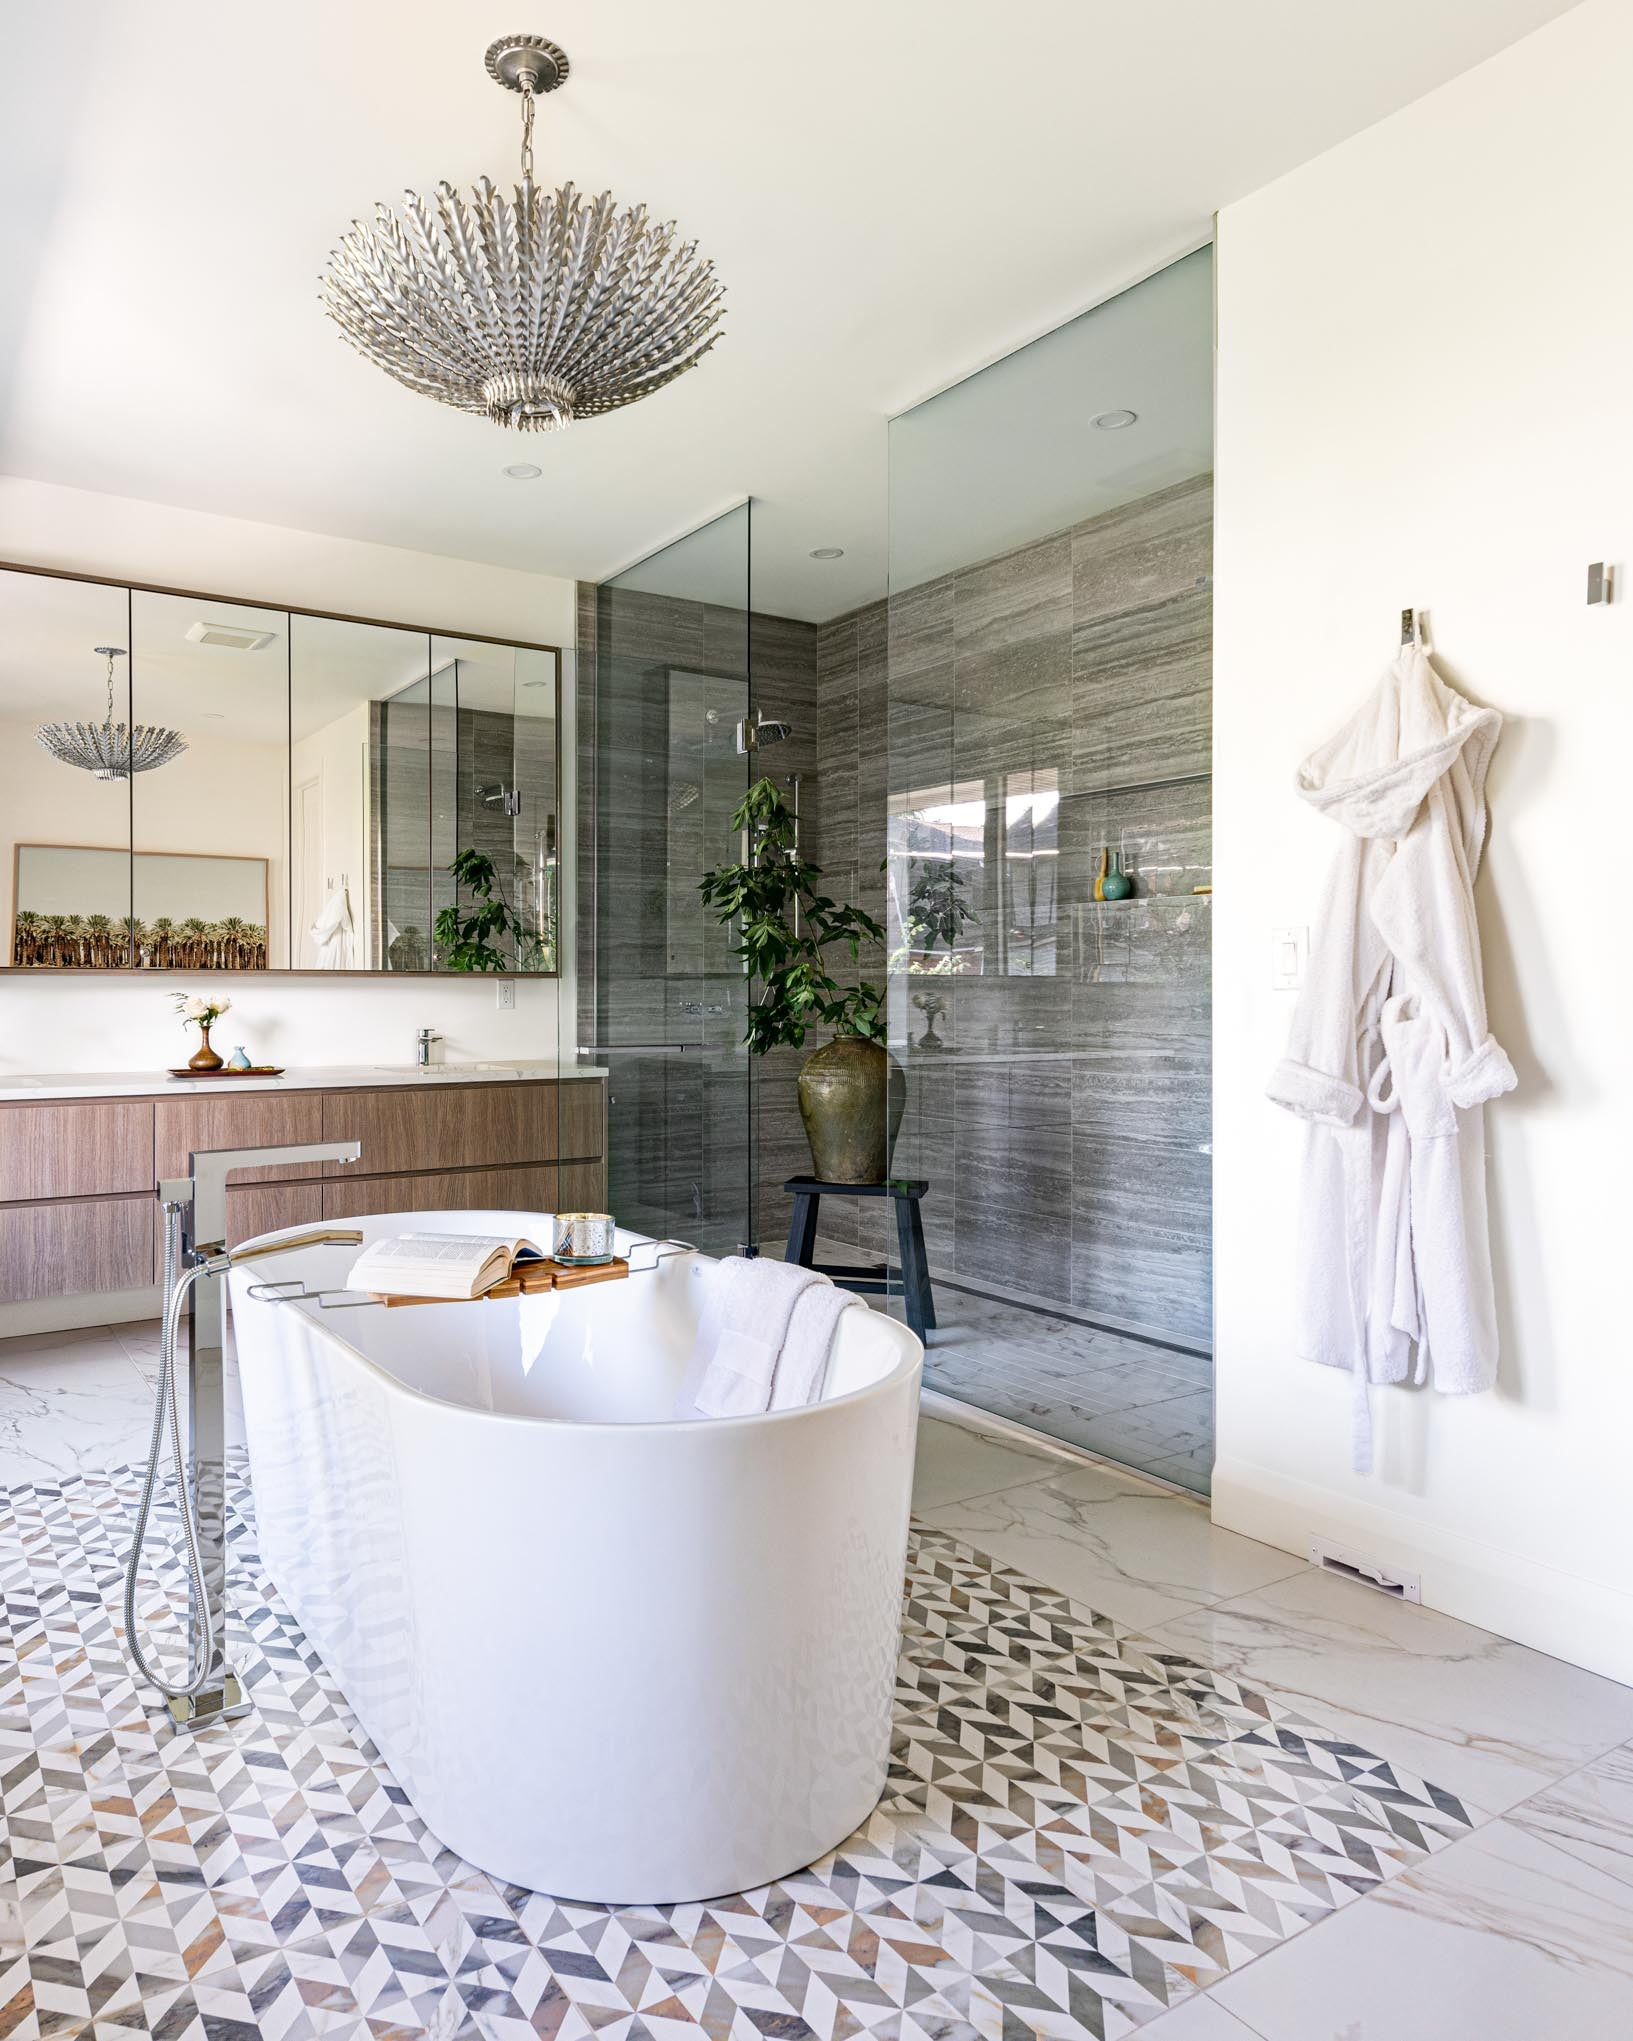 Master ensuite with large soaker tub.